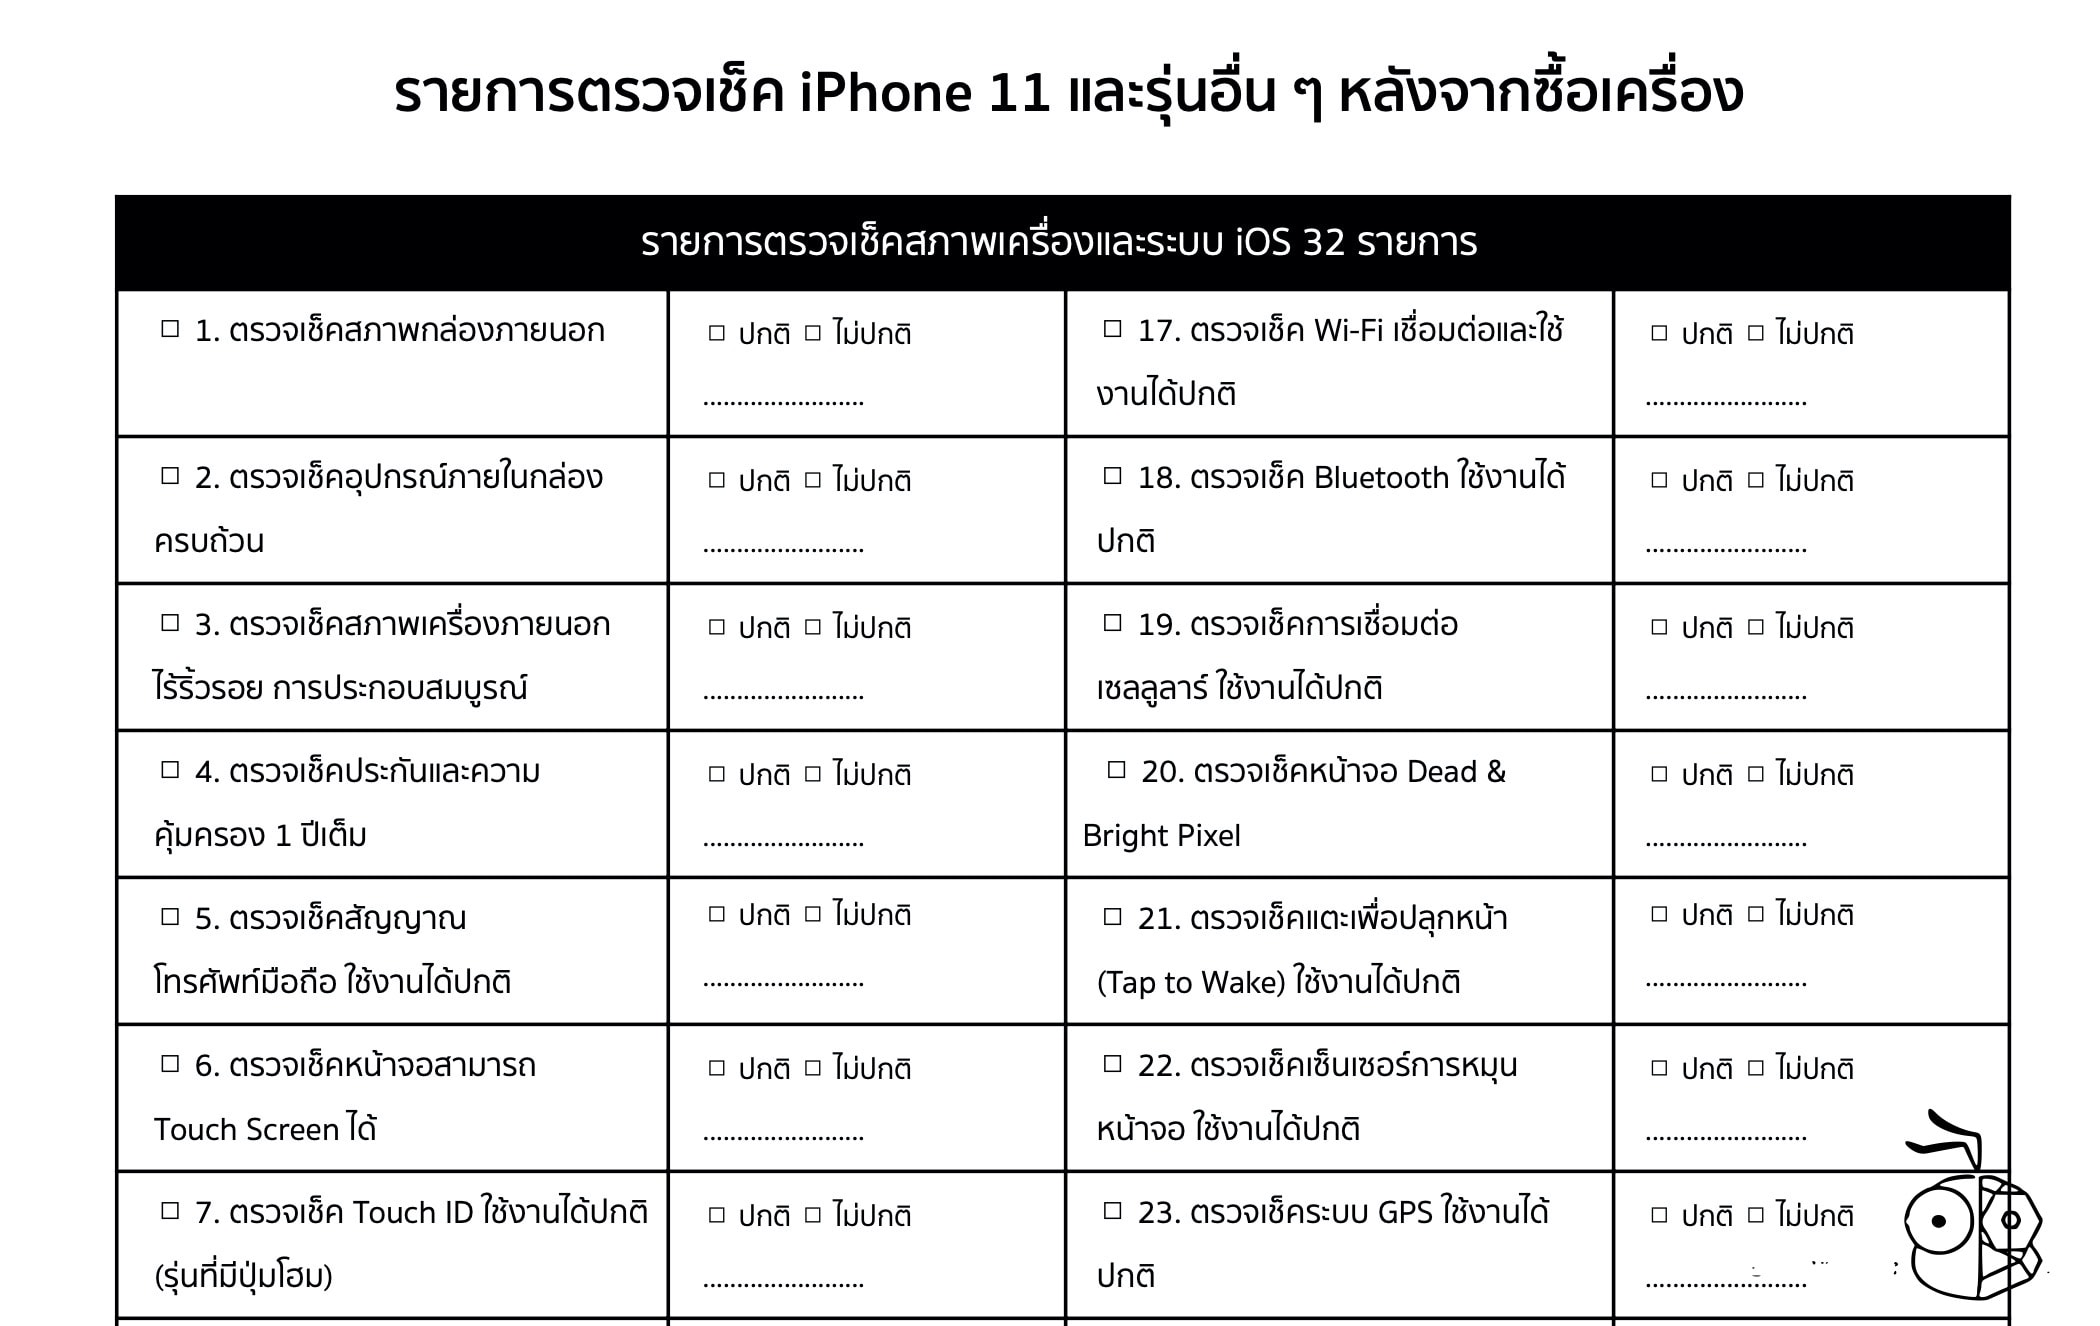 Imod Ss 2562 Iphone Qc Check List